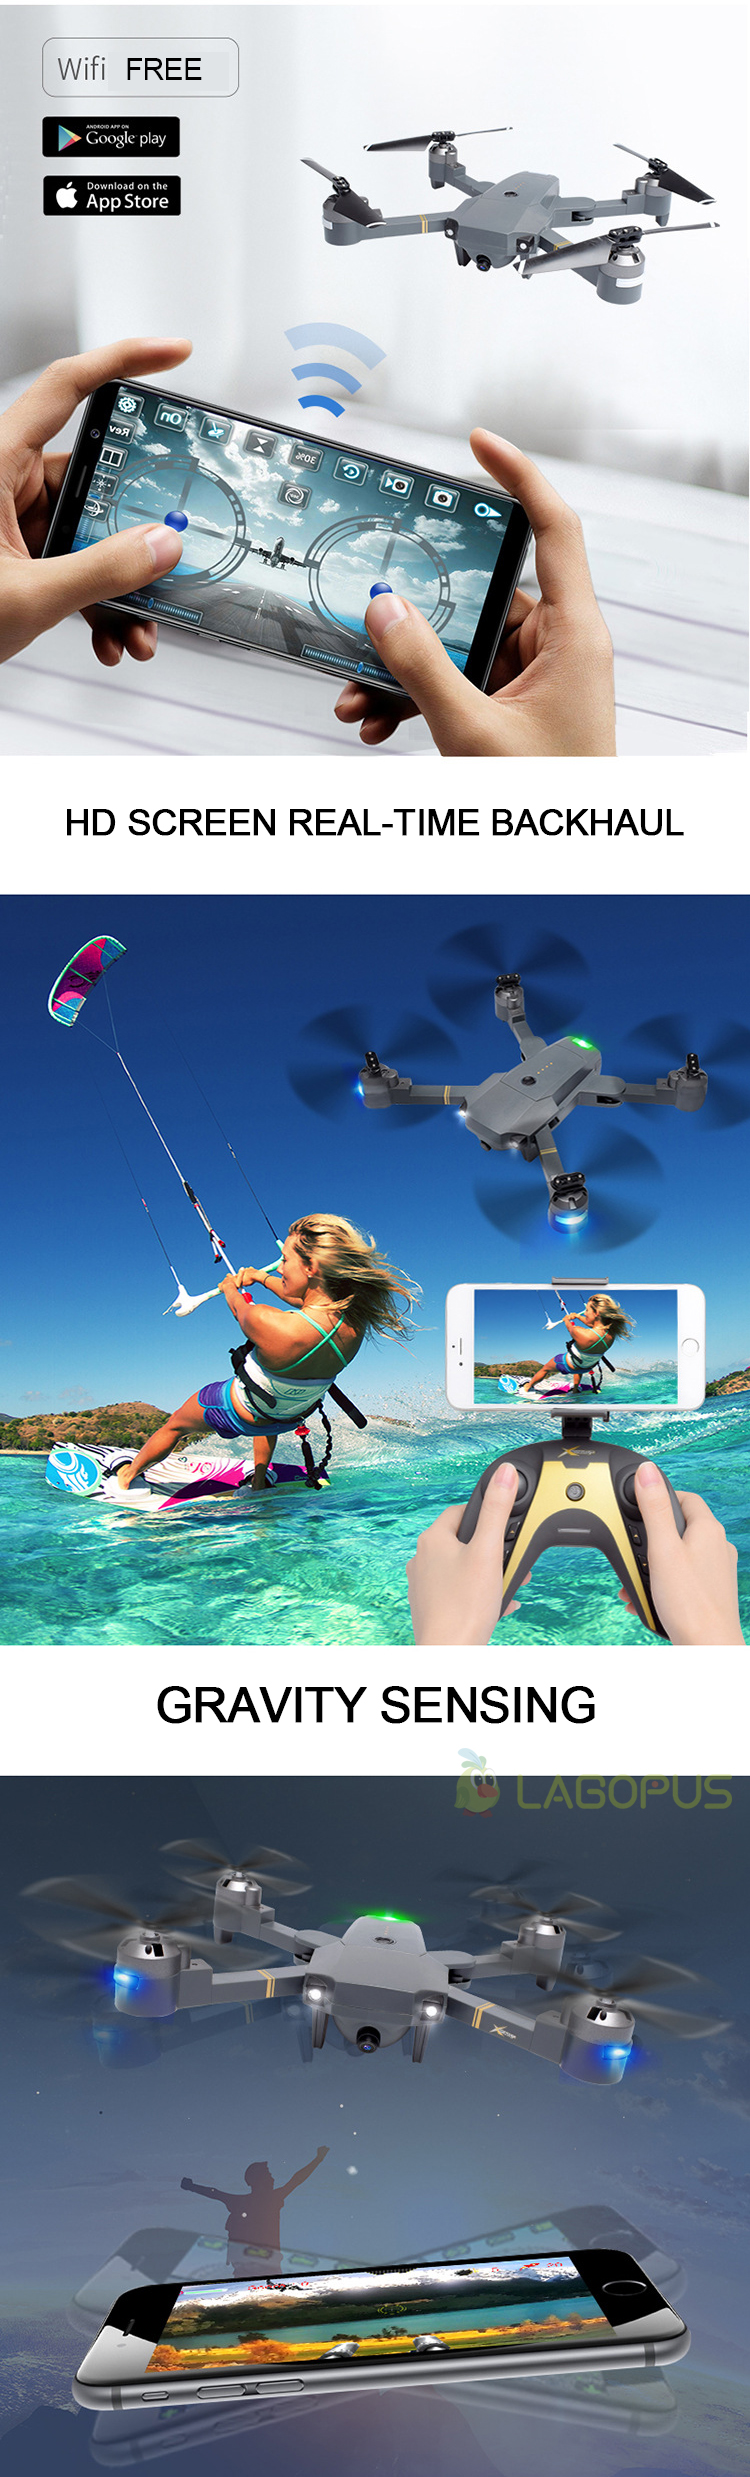 Lagopus XT-1 Plus 25 Mins Flight Duration 5MP FPV WIFI 1080P Drones with Camera HD Quadcopter Mini Drone Foldable Drone Dropship 4